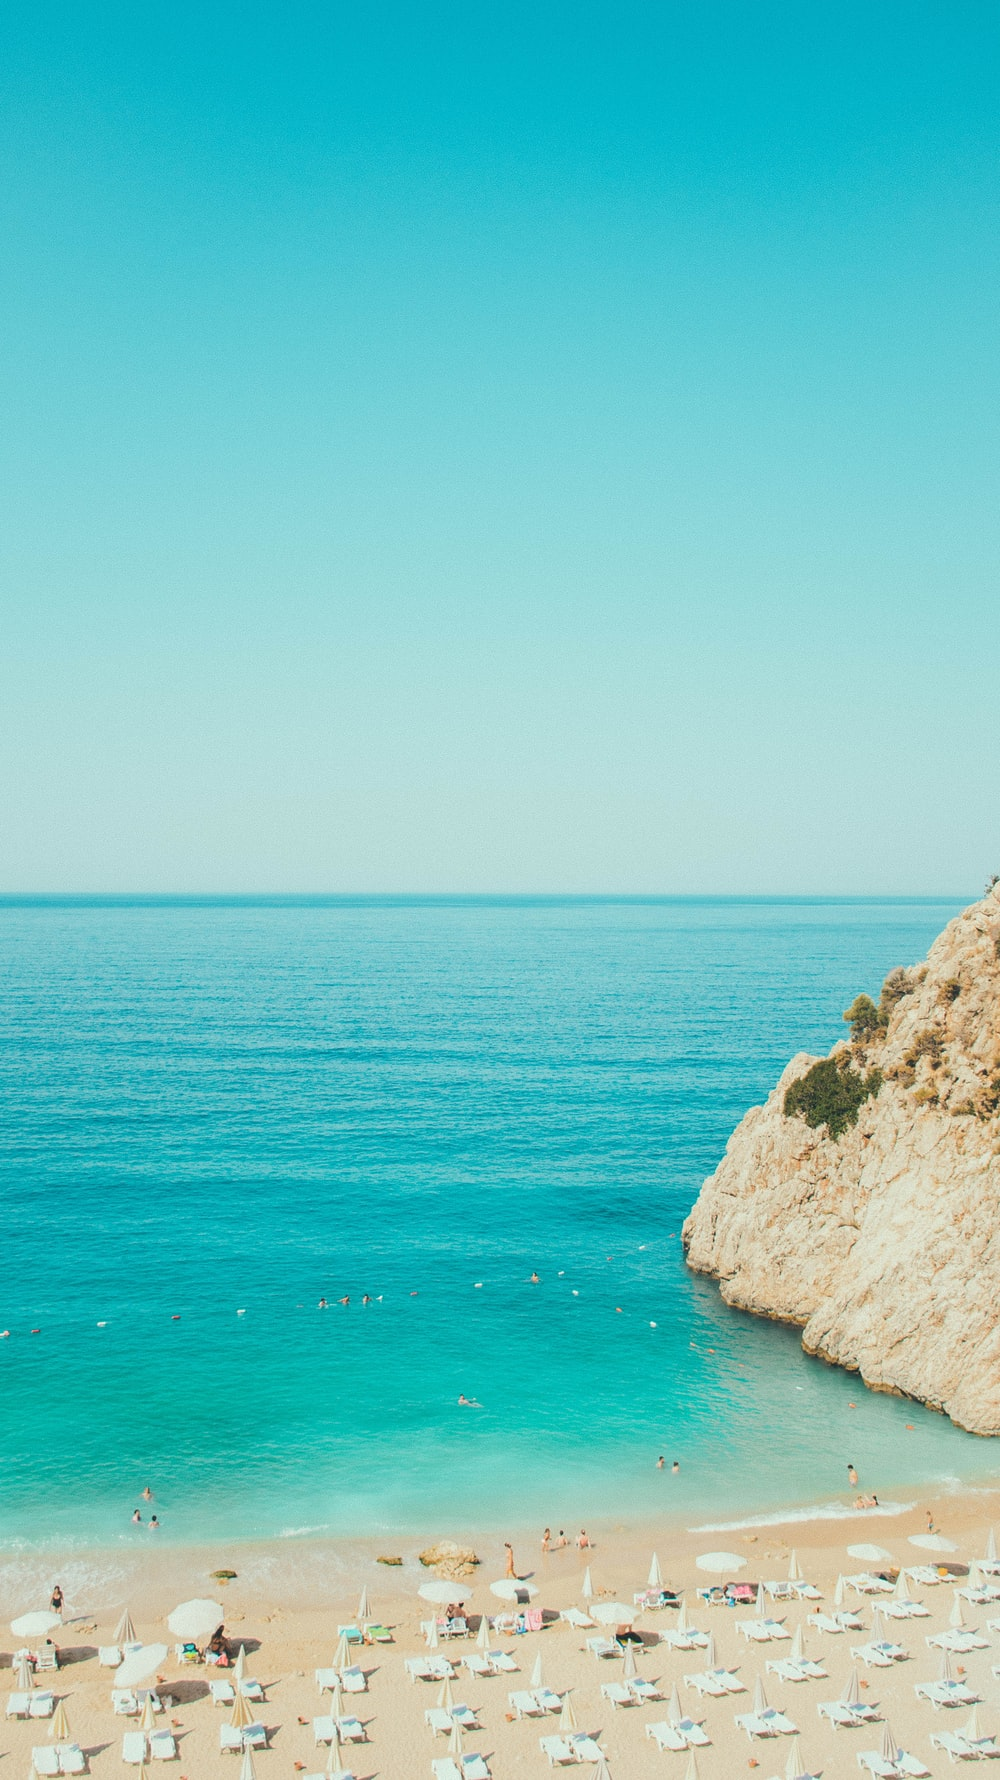 Beach Scenery Pictures Free